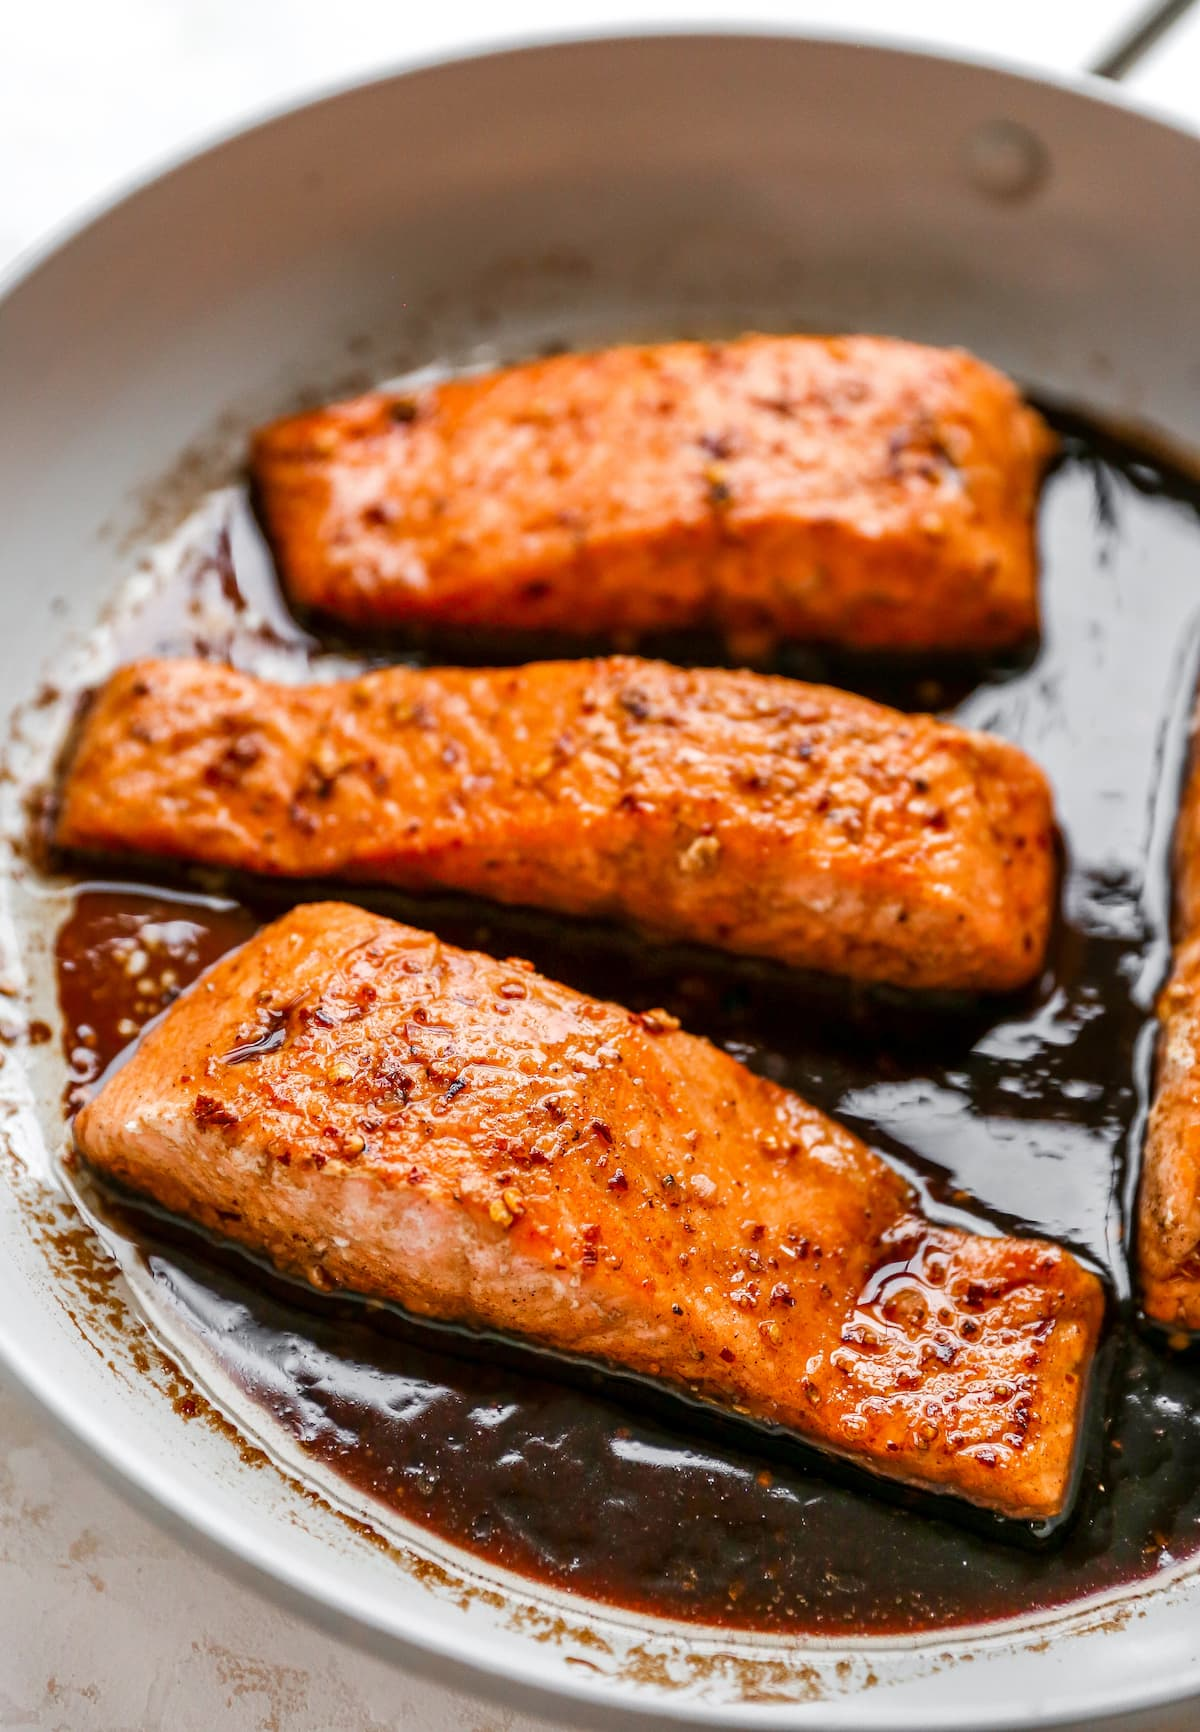 Four salmon filets in a skillet with balsamic glaze.